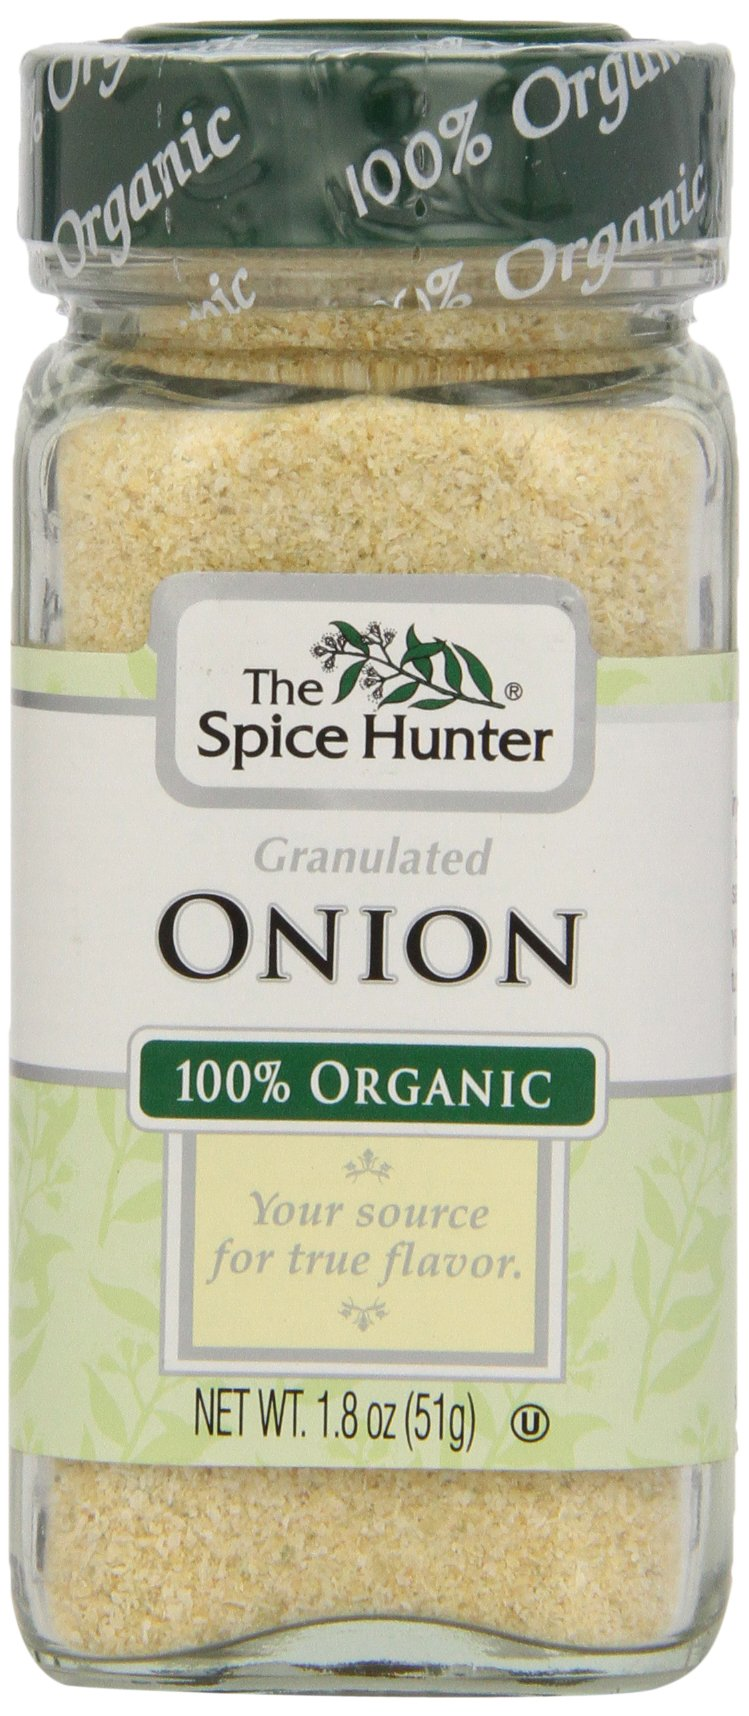 The Spice Hunter Onion, Granulated, Organic, 1.8 Ounce Jar (Pack of 48)